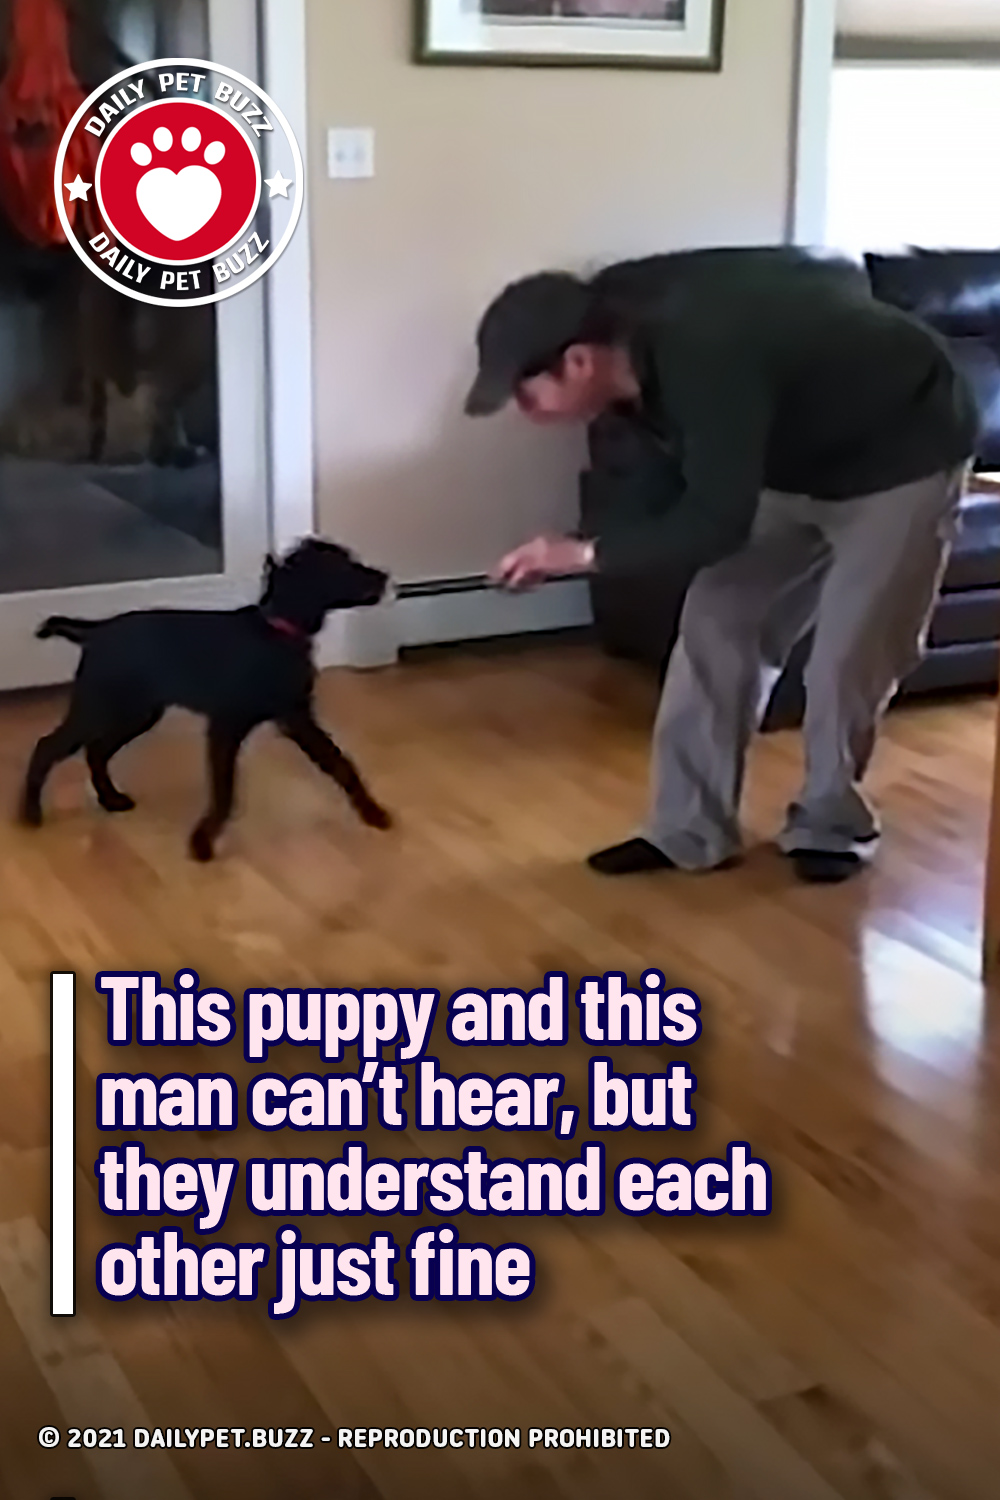 This puppy and this man can't hear, but they understand each other just fine